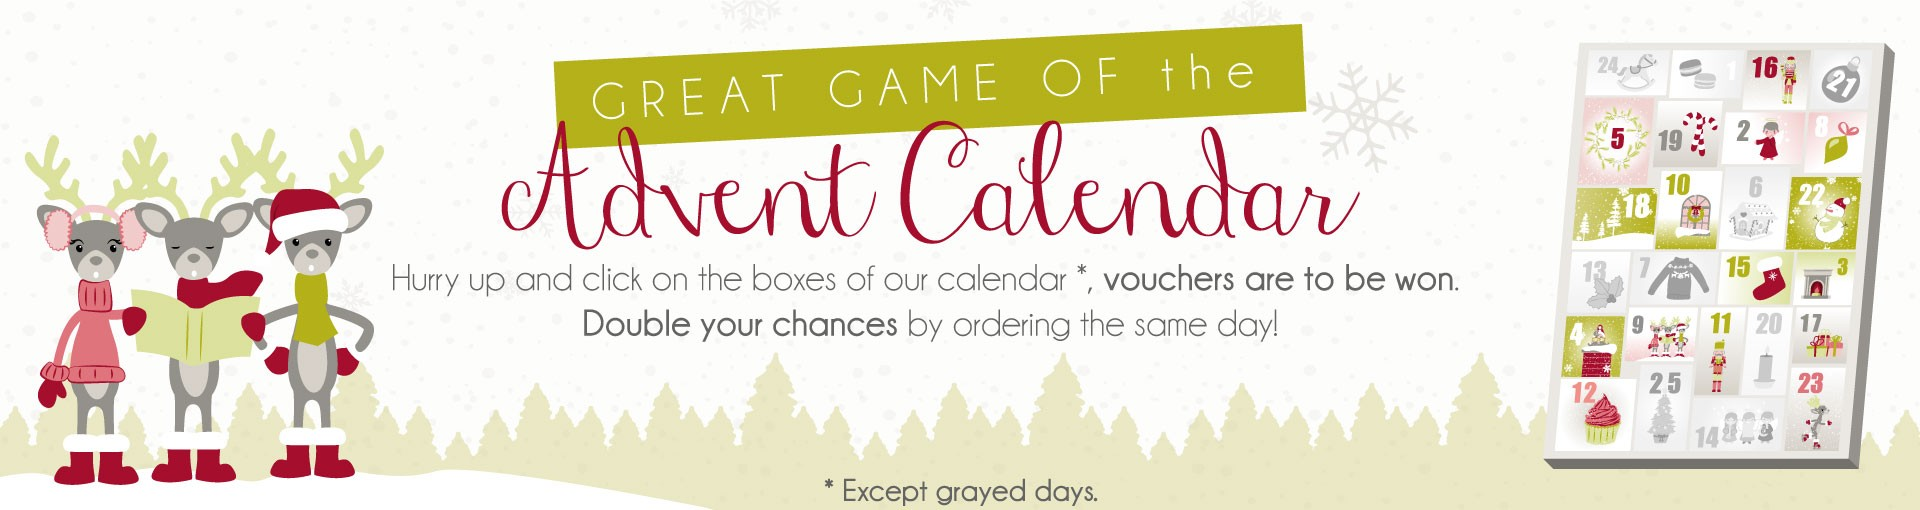 Advent calendar game